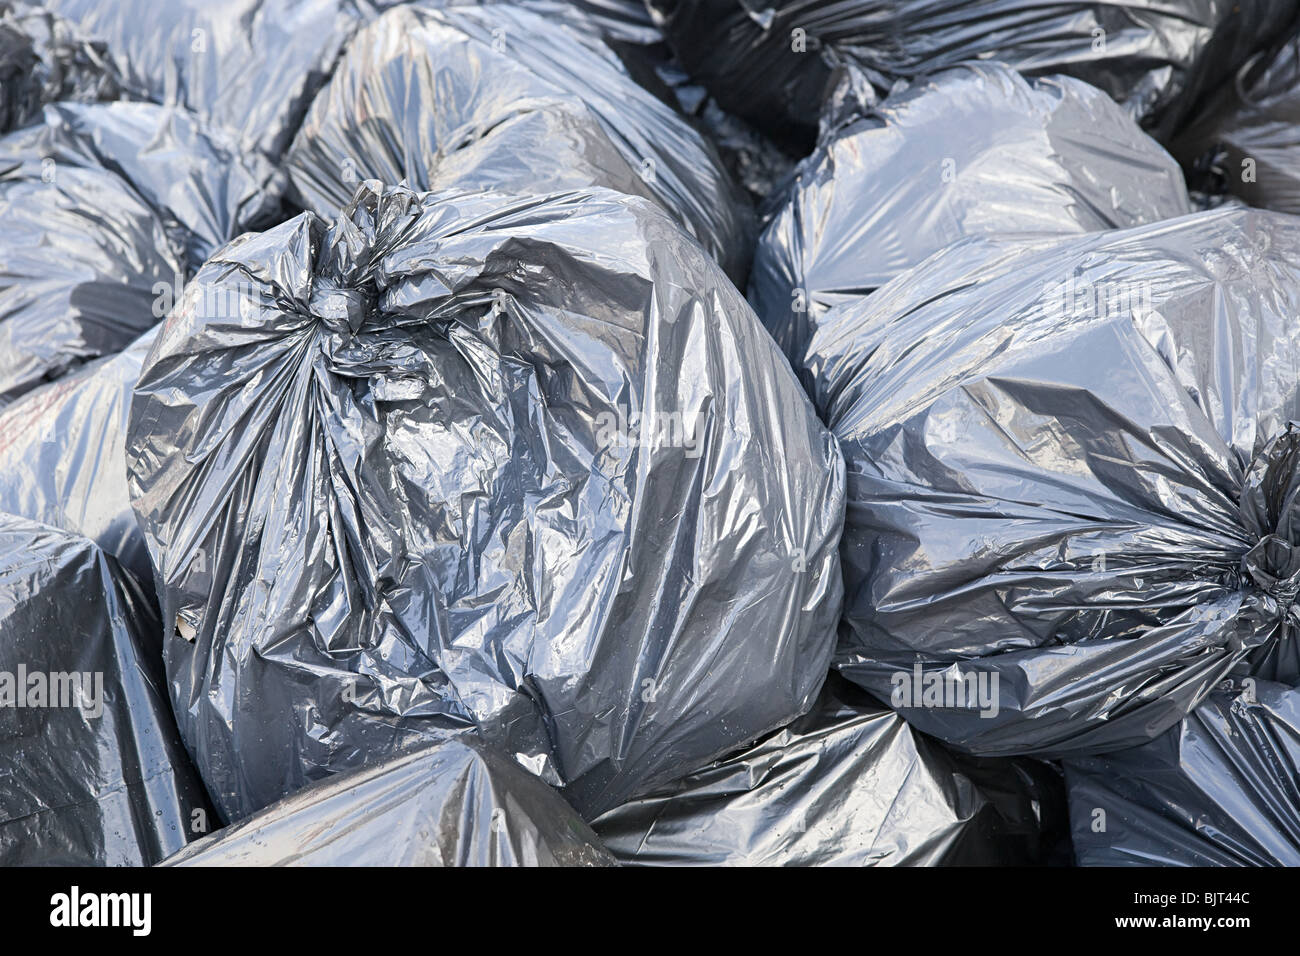 Stack of rubbish bags - Stock Image